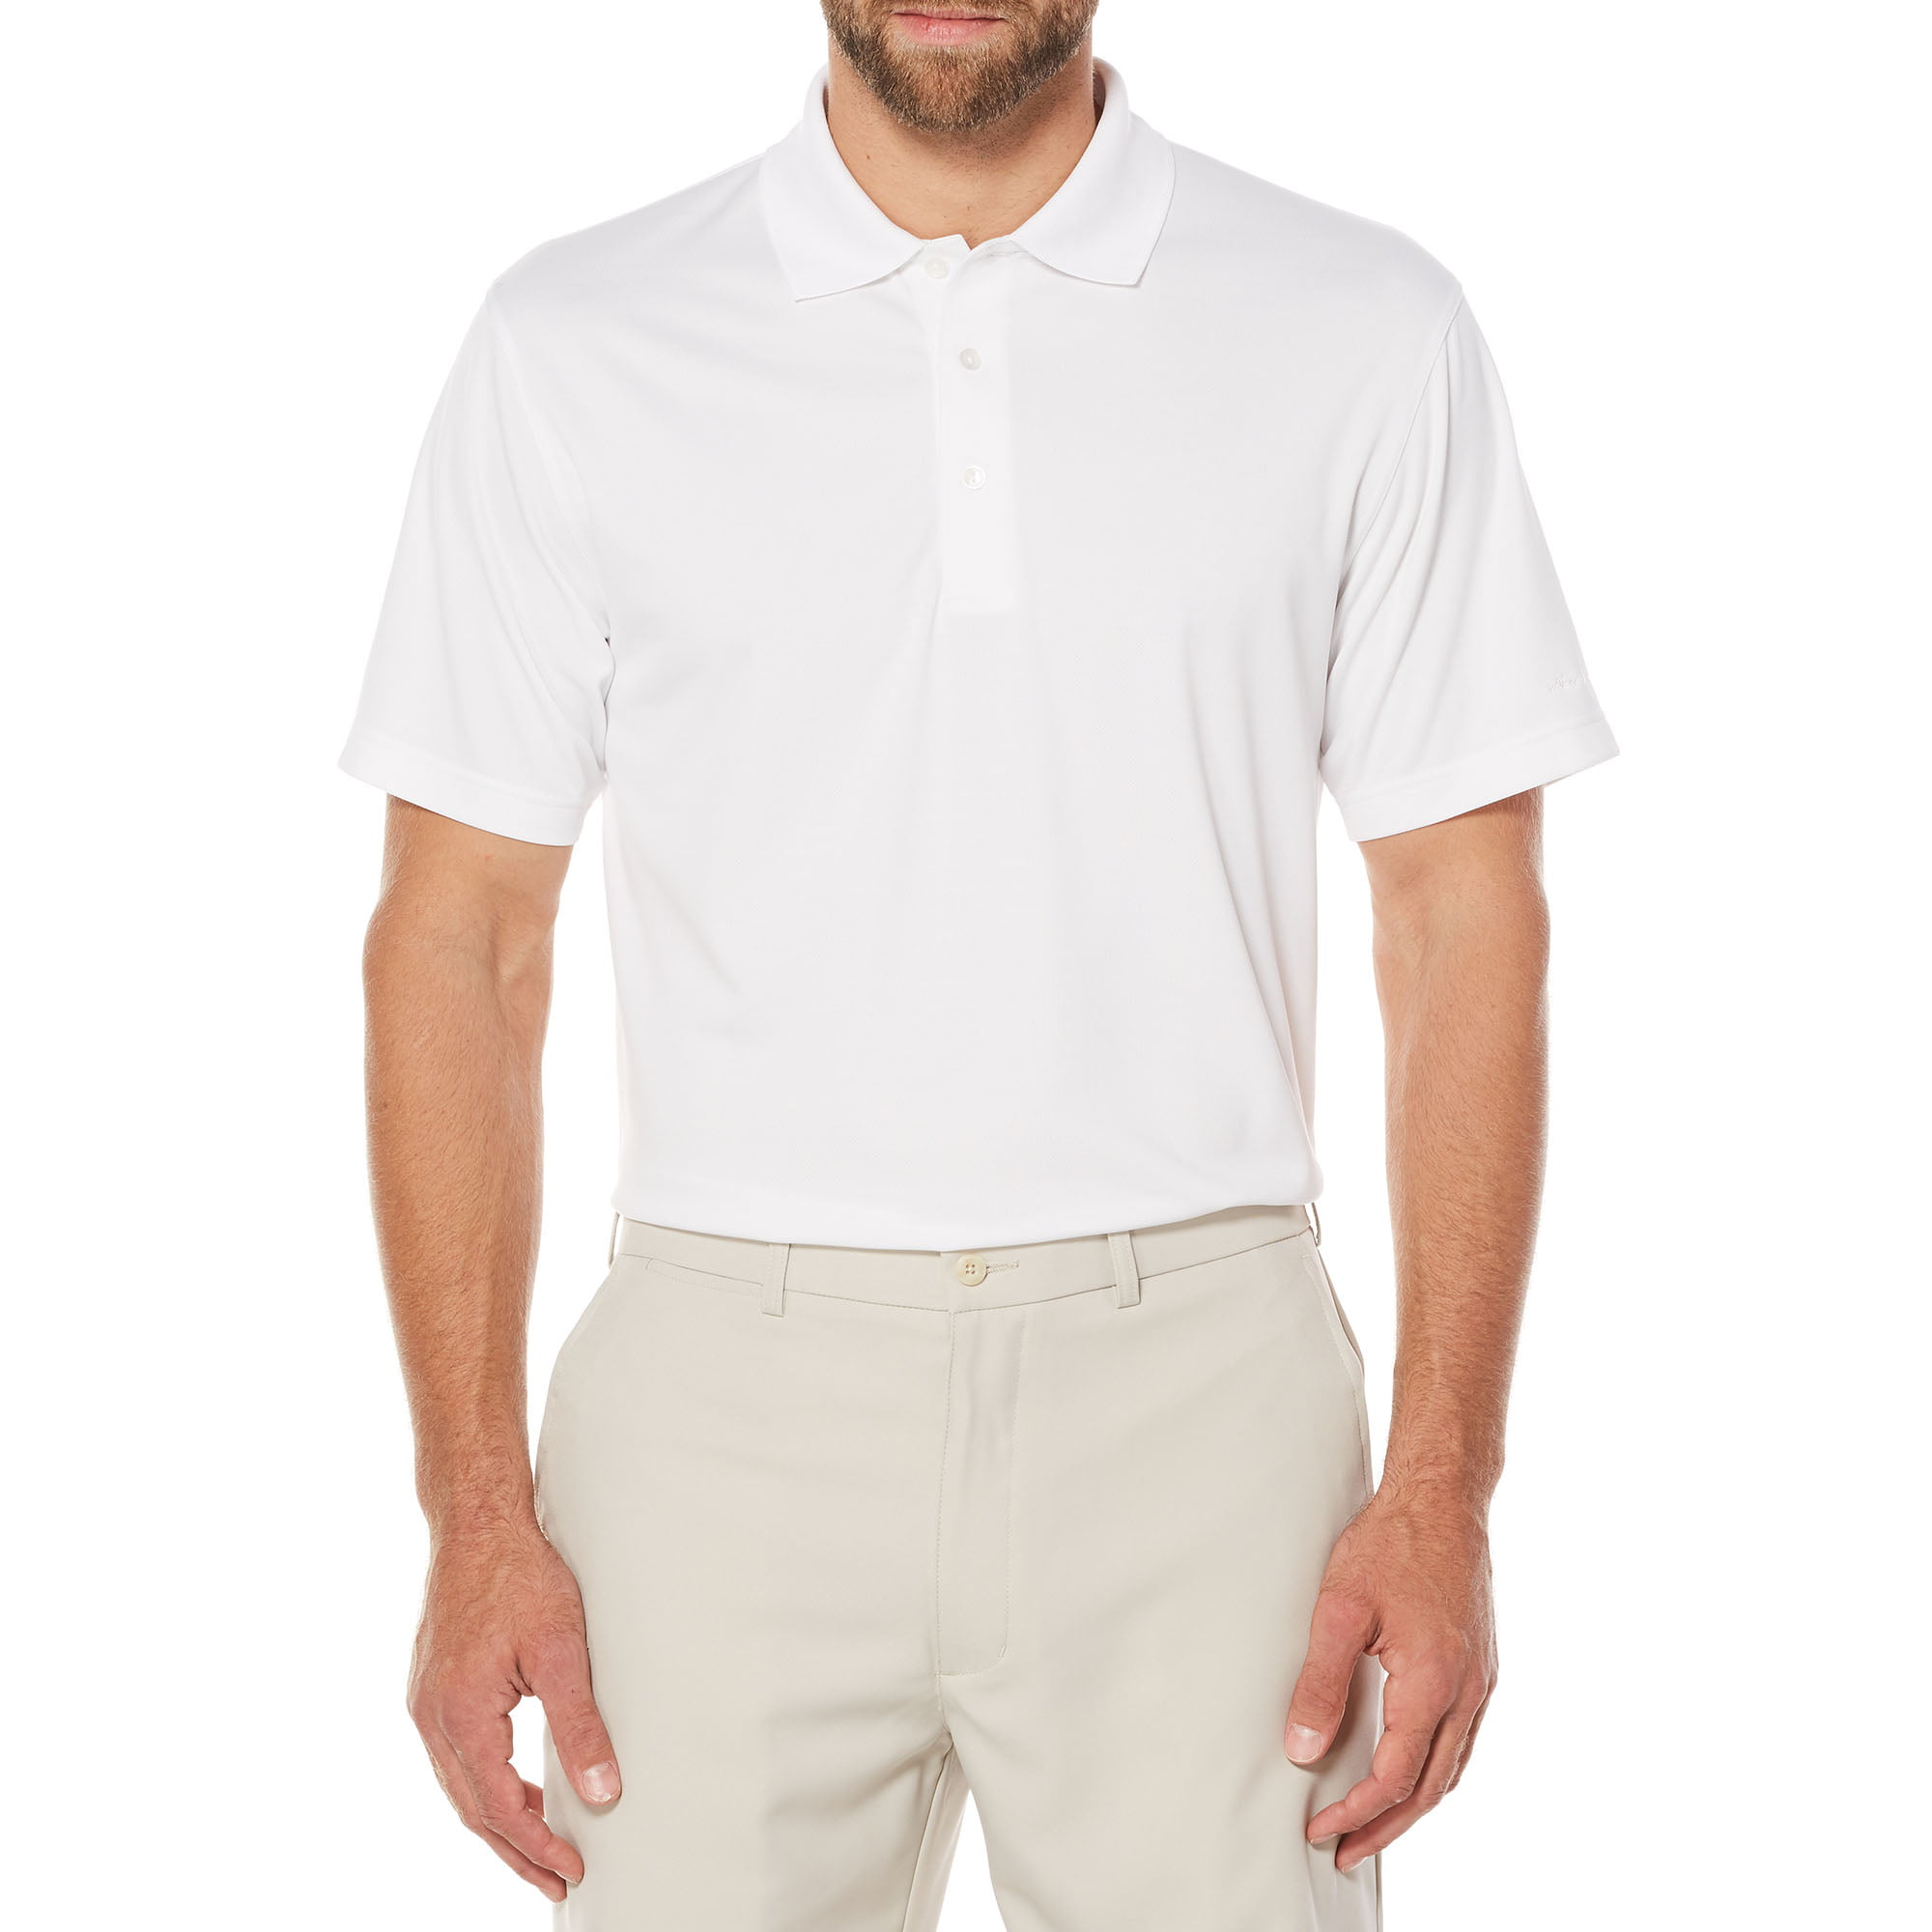 Big Men's Performance Solid Ventilated Short Sleeve Polo by Generic